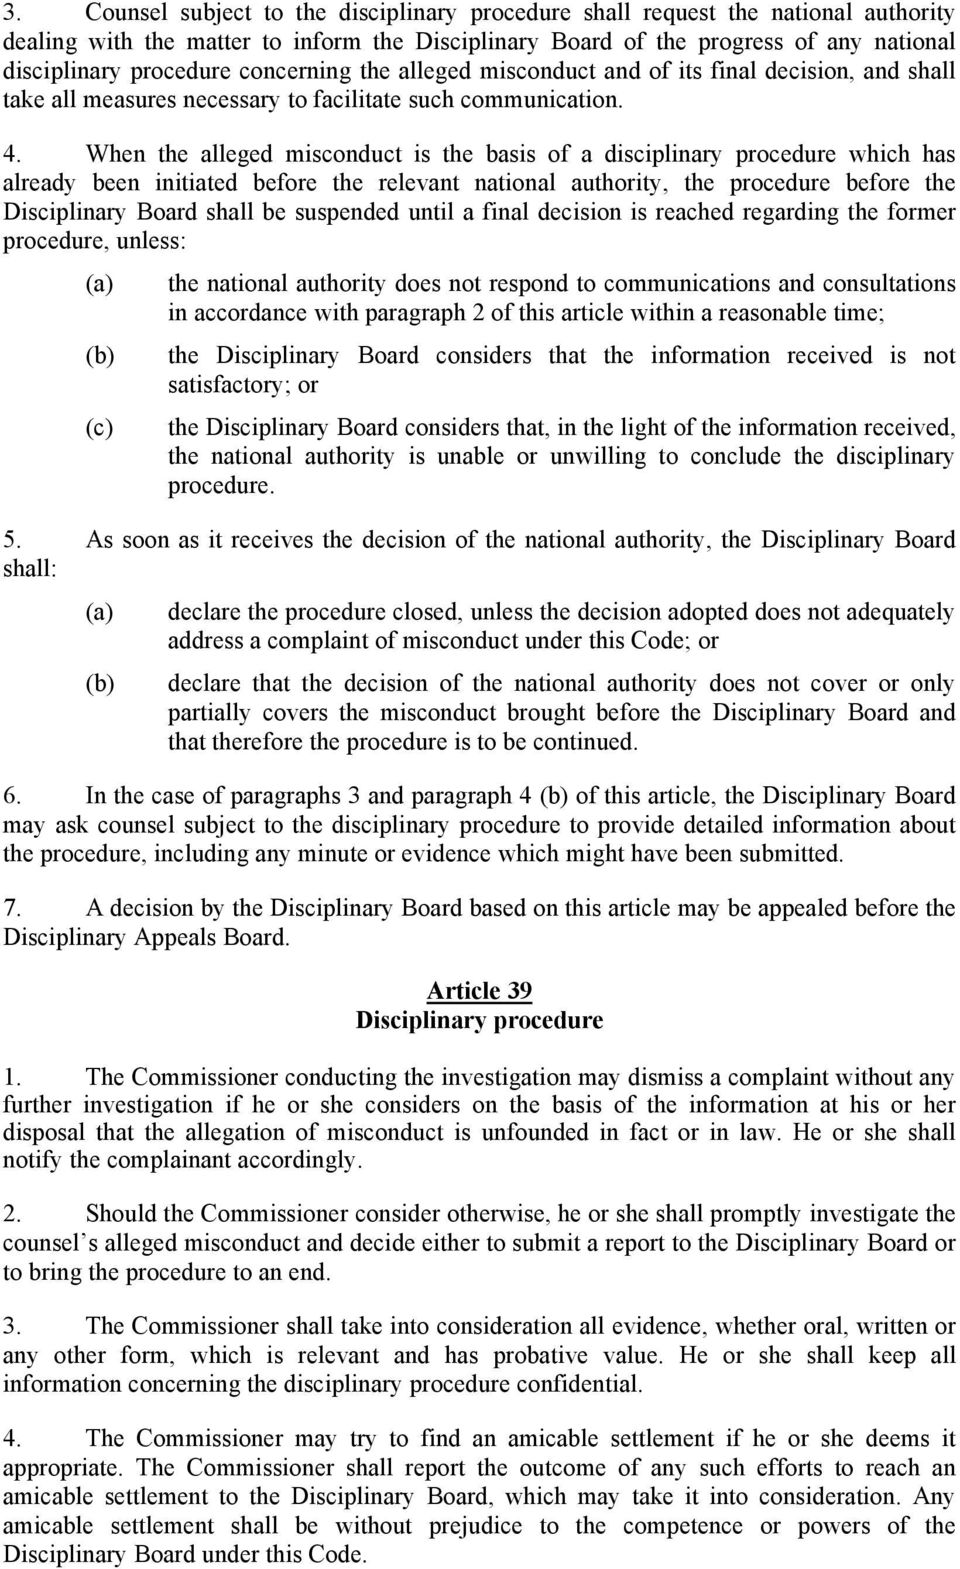 When the alleged misconduct is the basis of a disciplinary procedure which has already been initiated before the relevant national authority, the procedure before the Disciplinary Board shall be